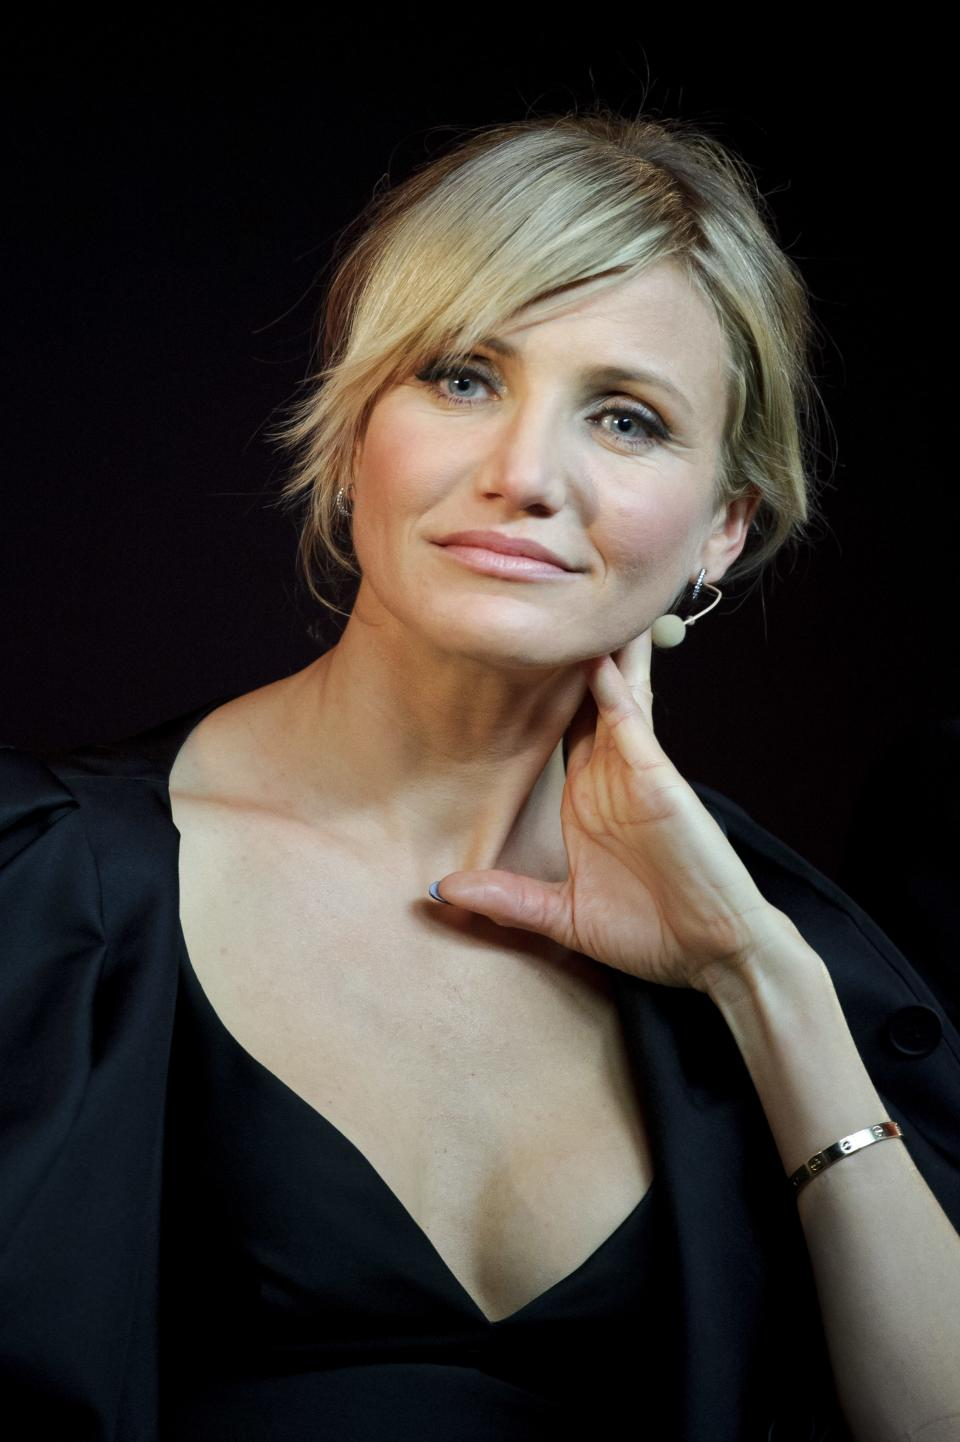 Cameron Diaz seen at Meet the Filmmakers: Gambit at The Apple Store on Wednesday, Nov. 7, 2012, in London. (Photo by Jonathan Short/Invision/AP)